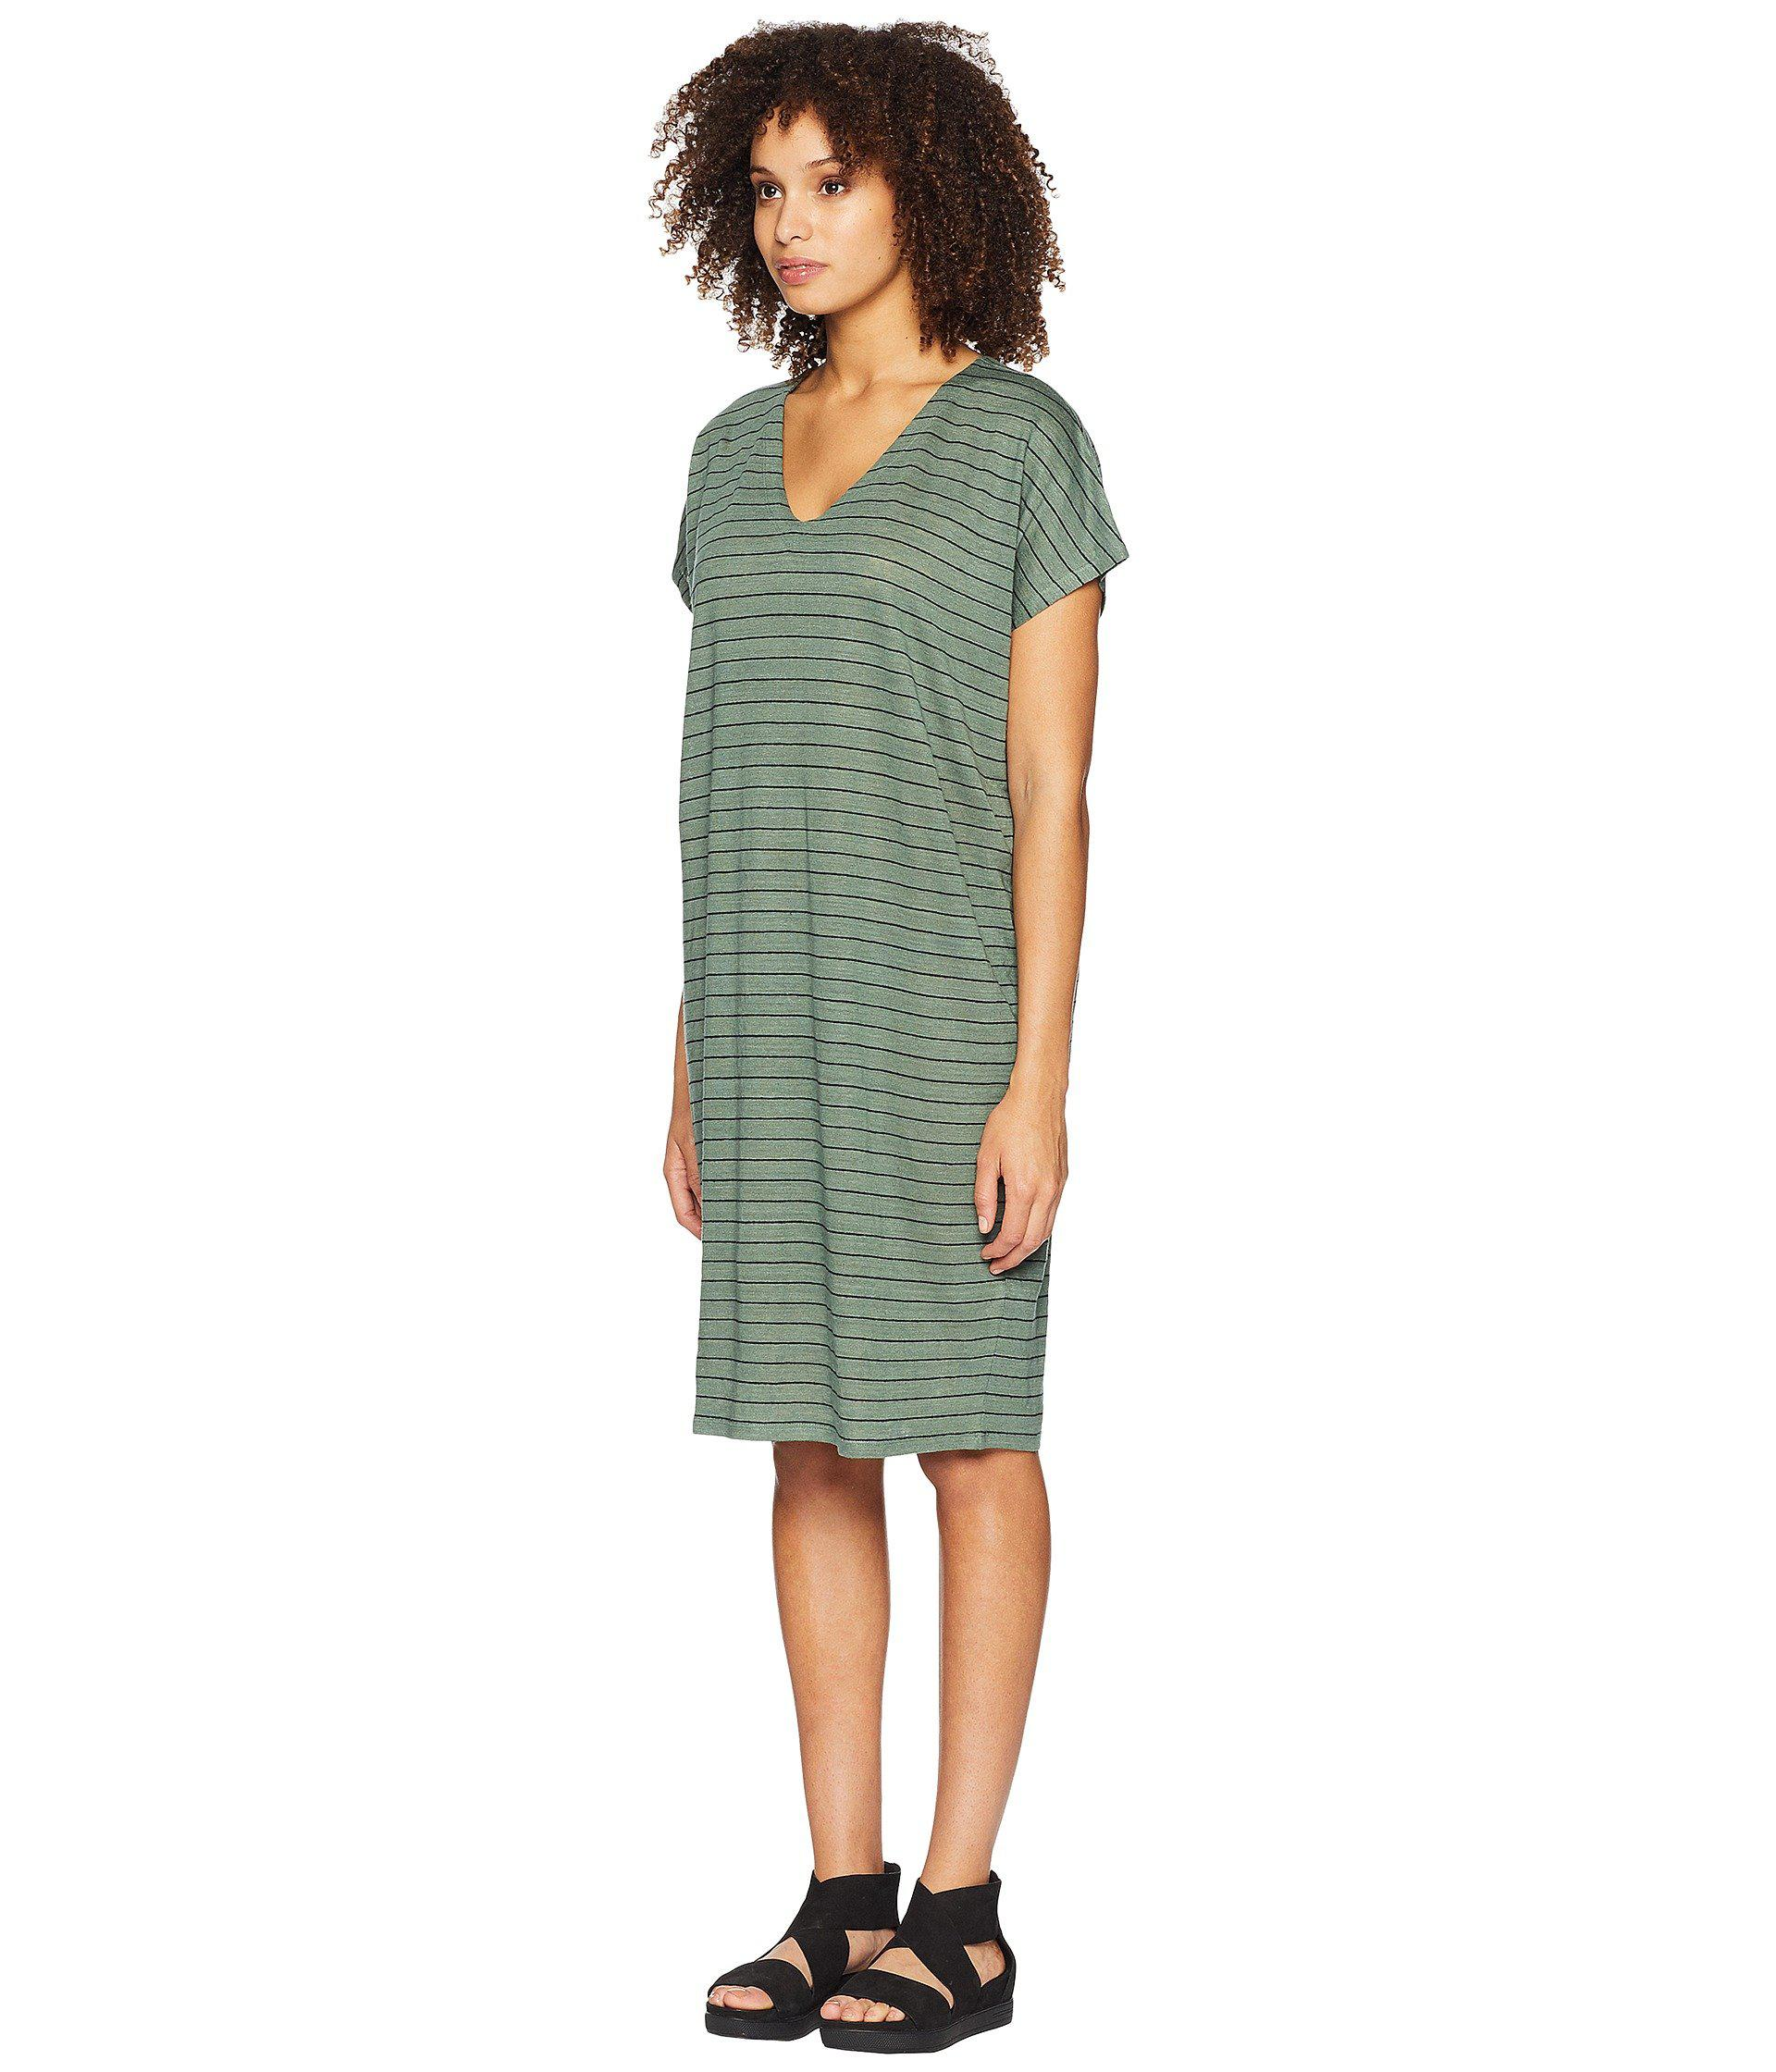 0a9c4ae0473ce Lyst - Eileen Fisher V-neck Knit Linen Dress in Green - Save 50%